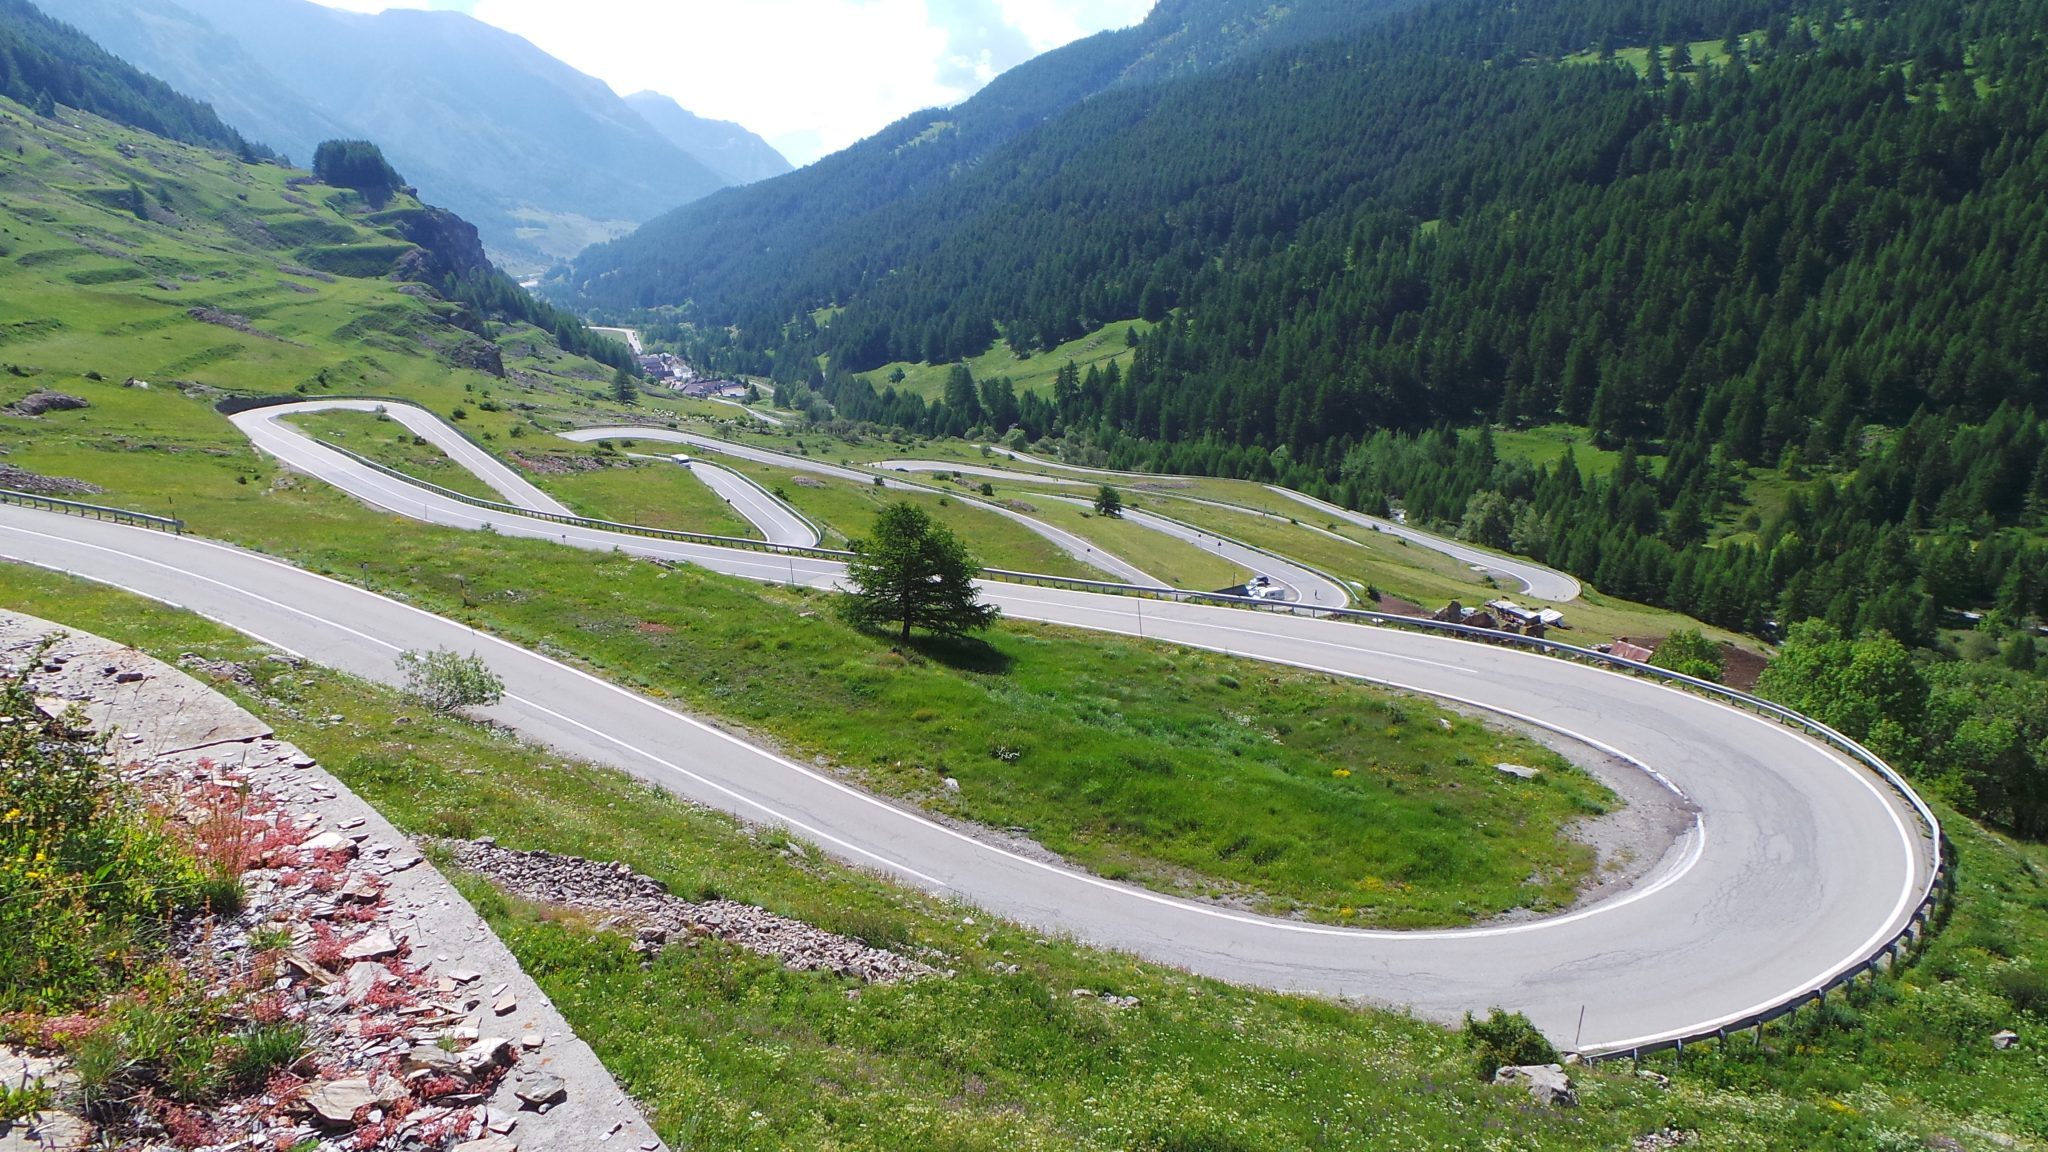 Tour de France 2014 - Epilogue: Col de Larche